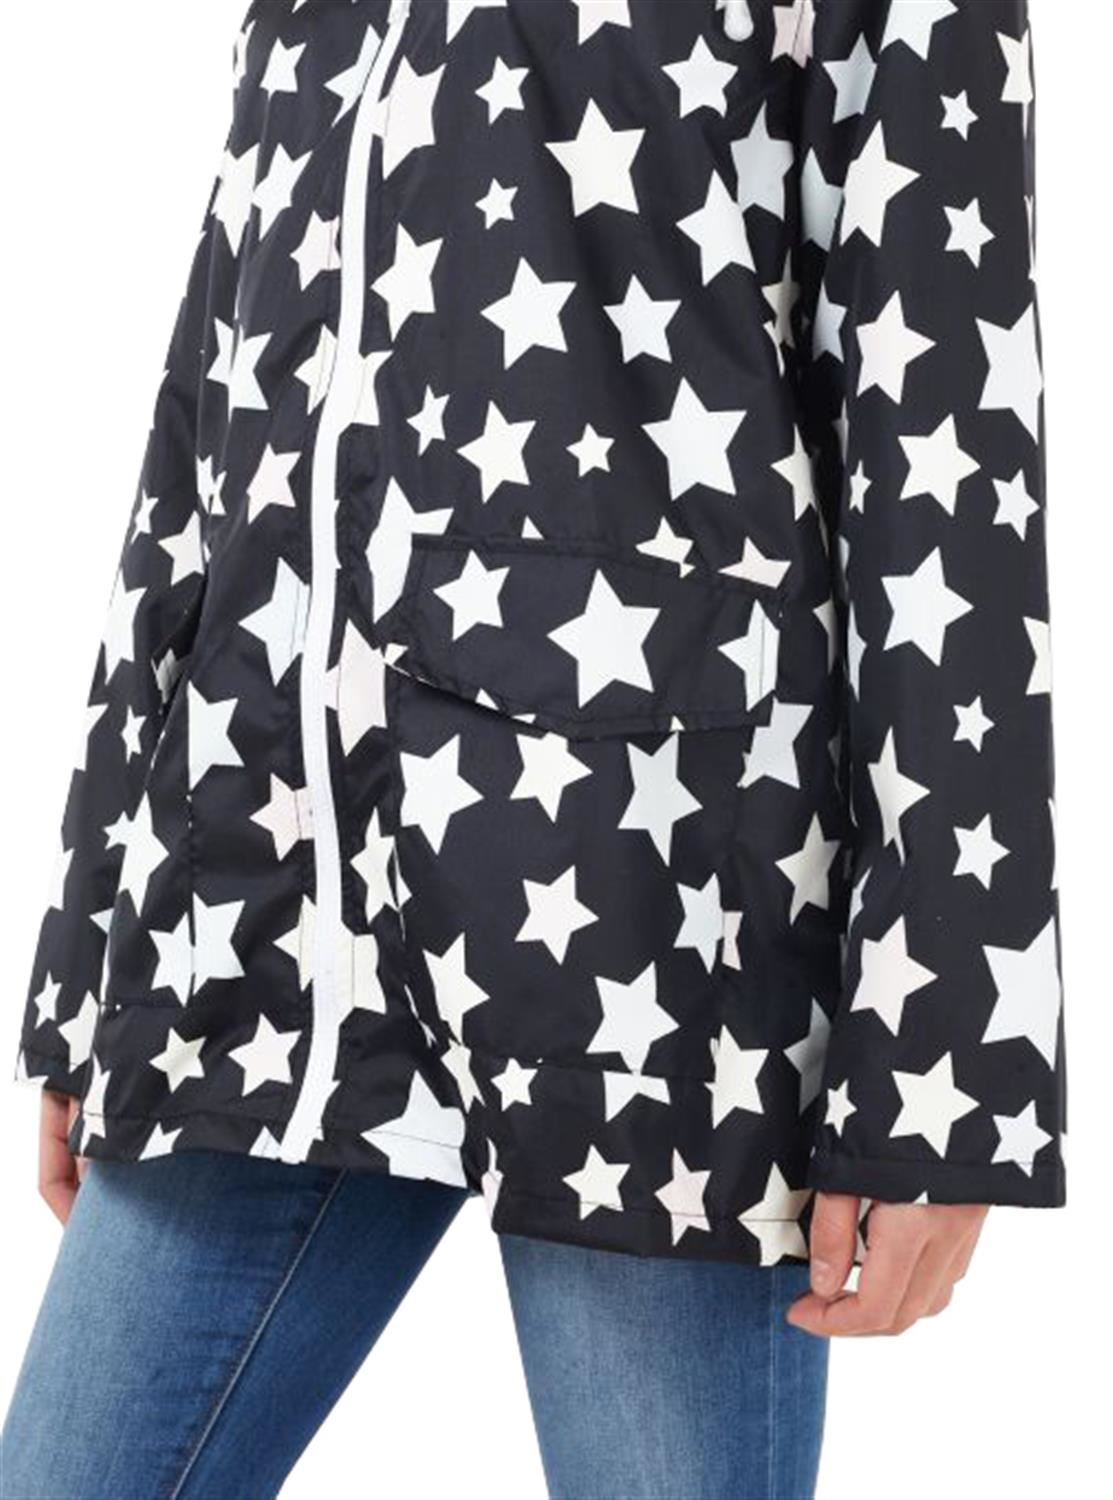 New-Ladies-Plus-Size-All-Over-Star-Print-Showerproof-Mac-Jacket-Raincoat-18-24 thumbnail 4